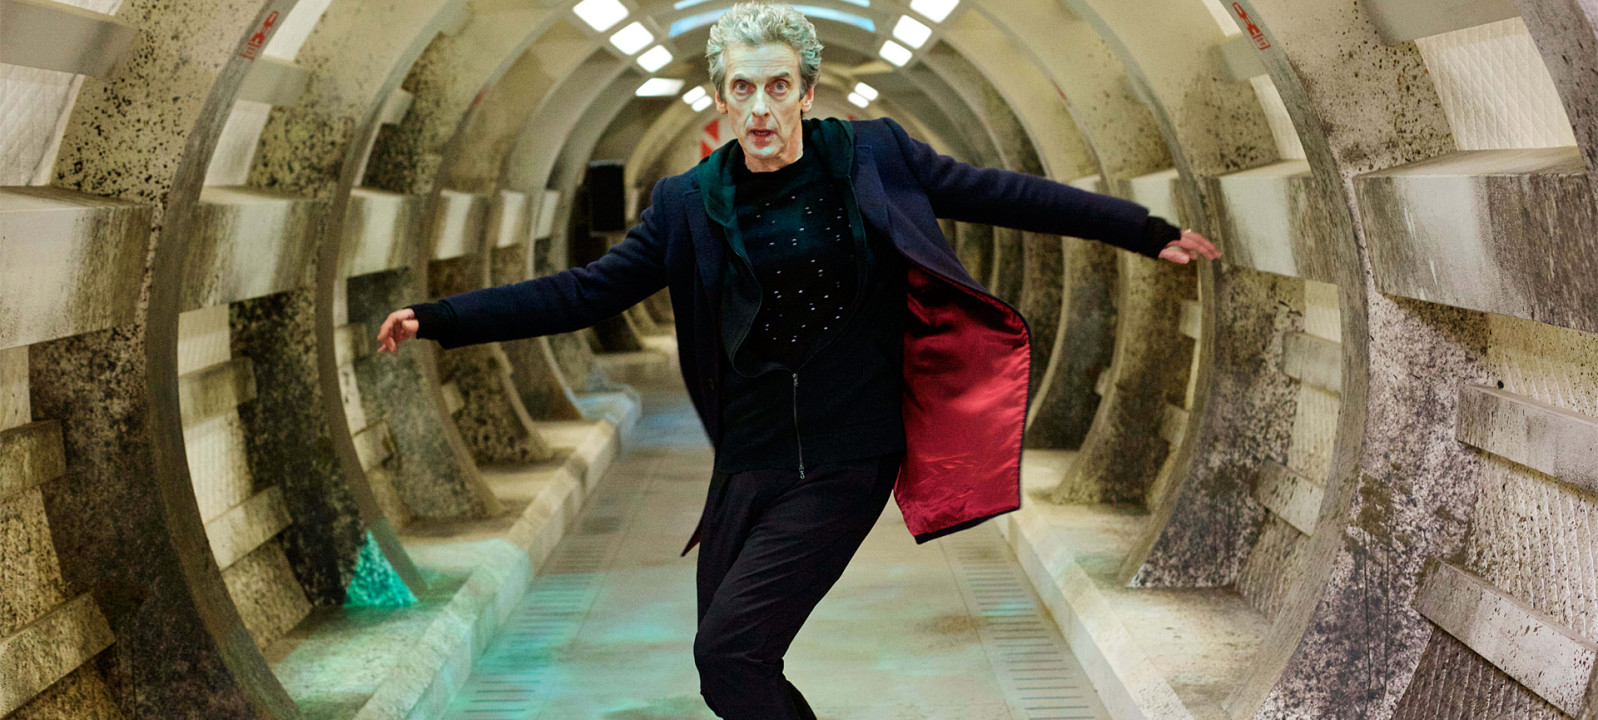 Peter Capaldi in full twist as the Doctor (Photo: BBC)